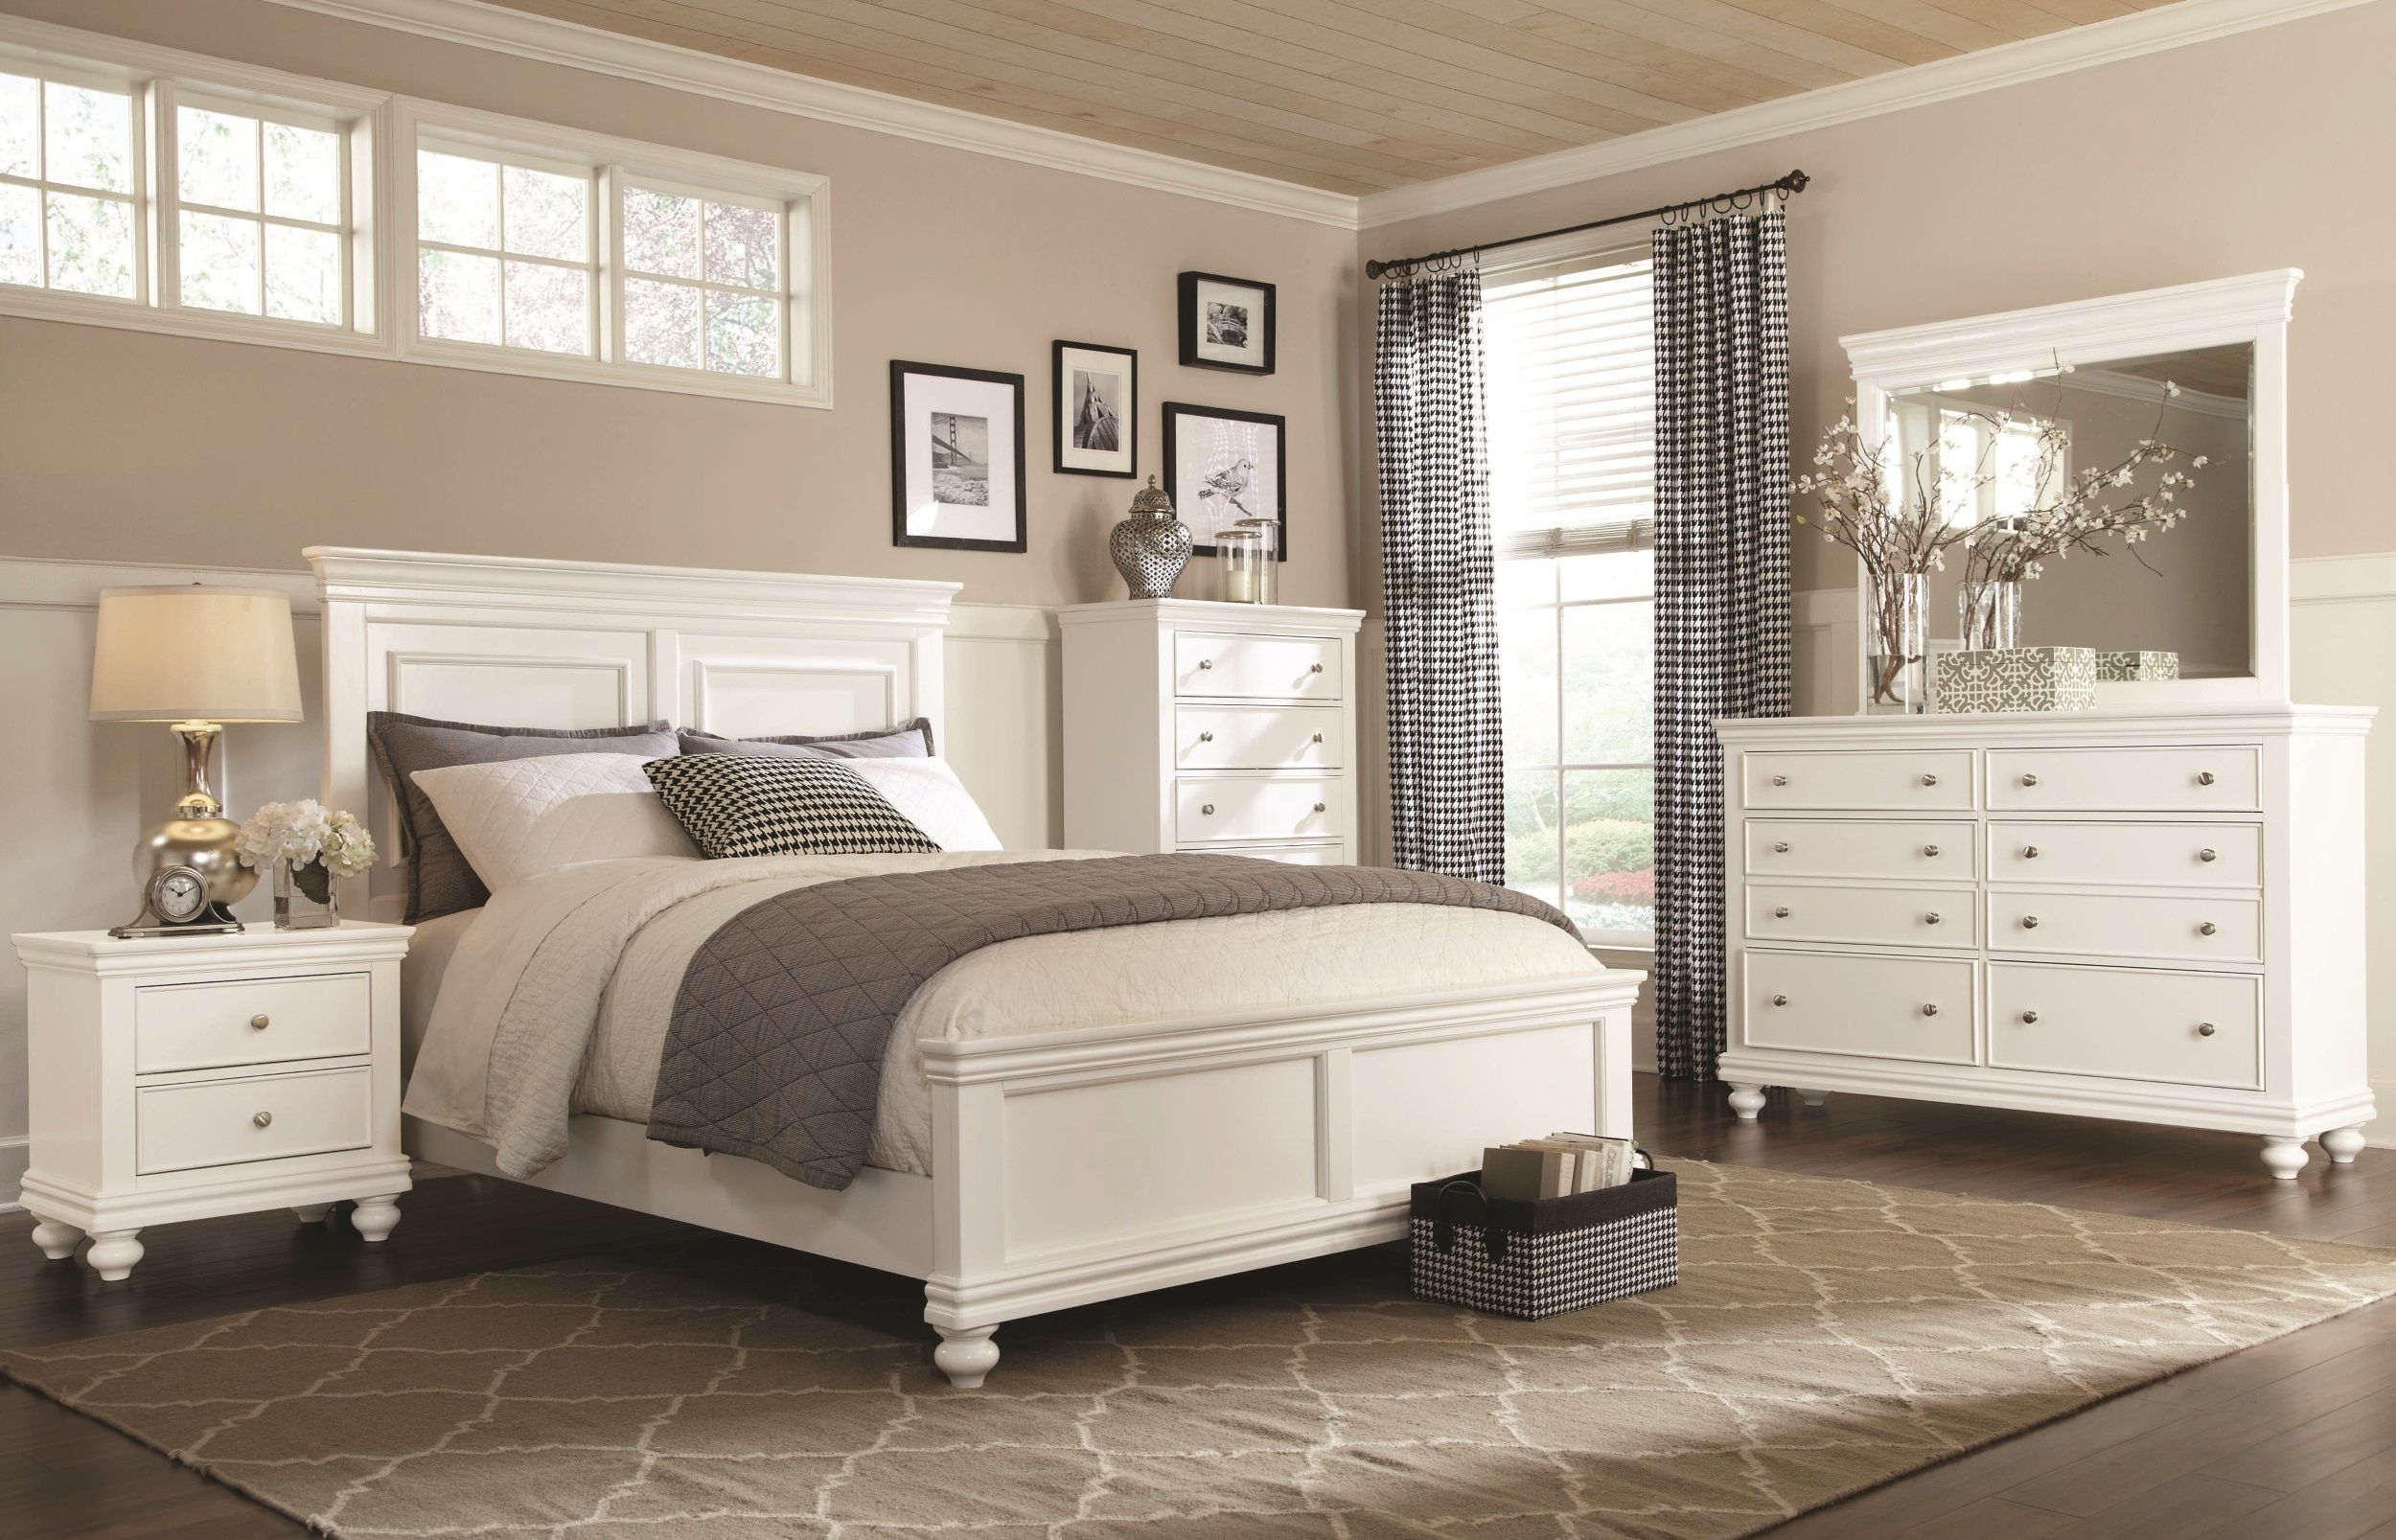 Bedroom Bedroom Bed Beautiful Bedroom Sets King Size Bedroom With